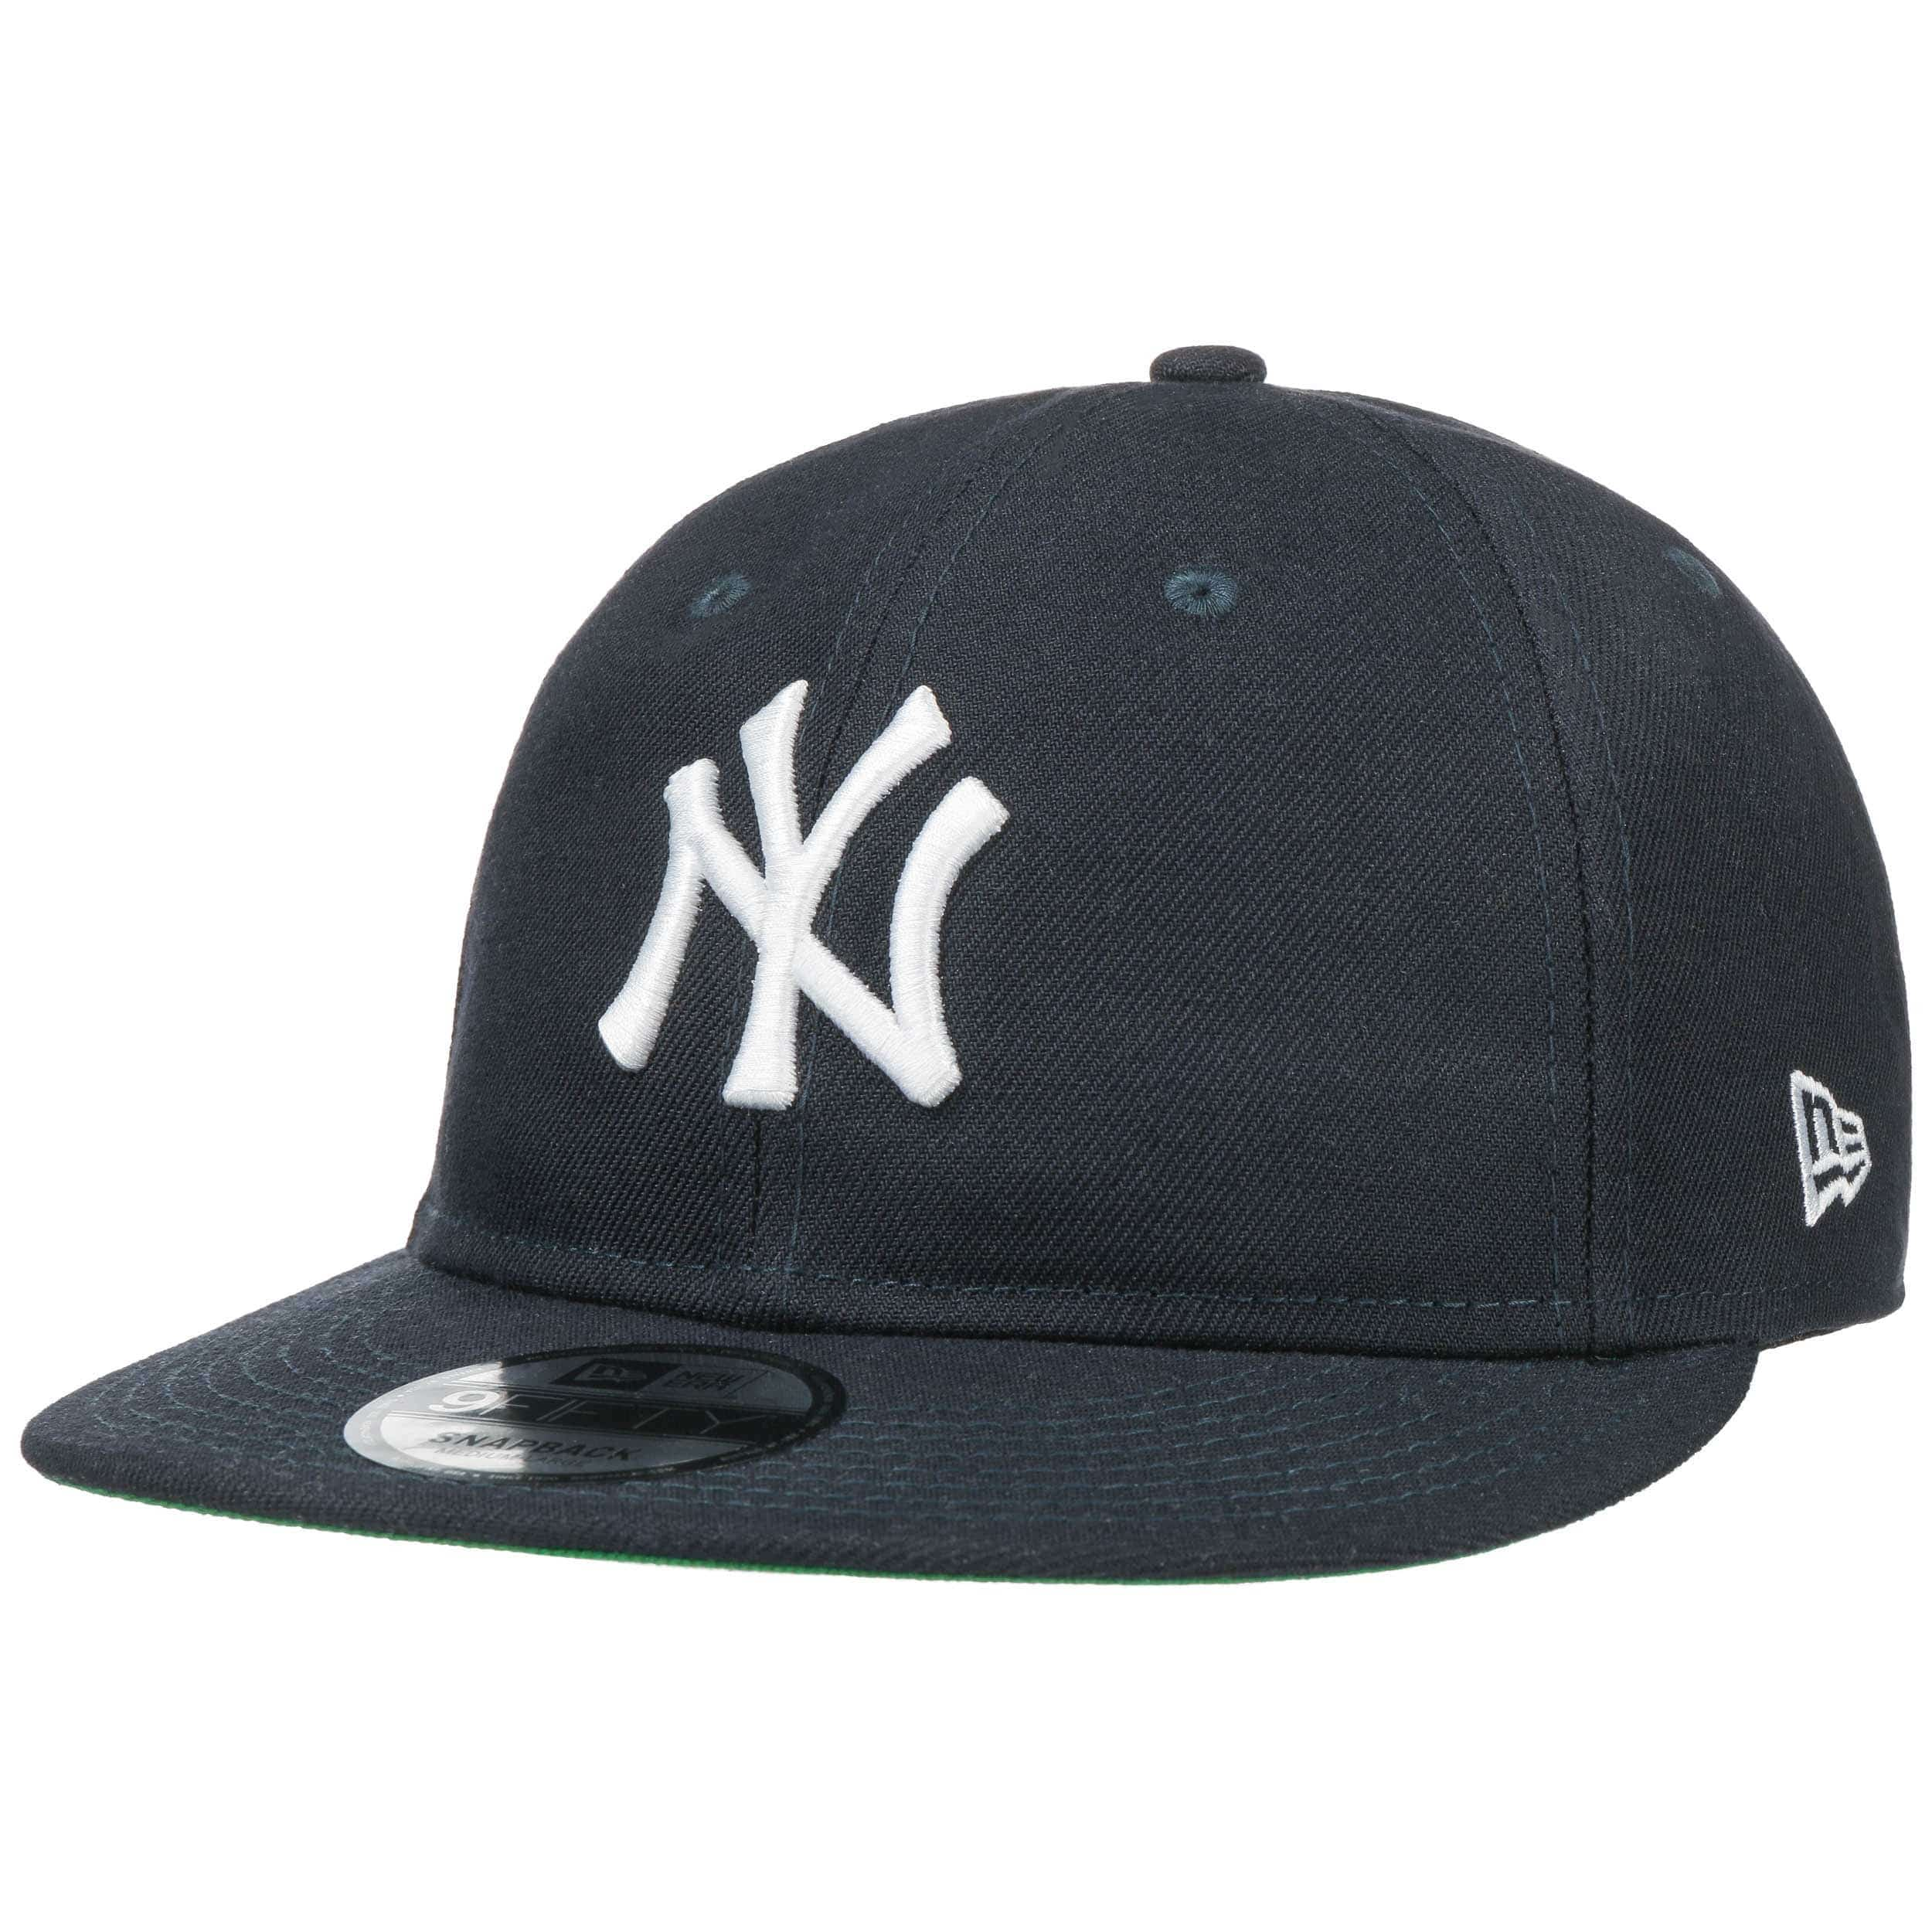 New Era 9Fifty Retro Crown In New York Yankees